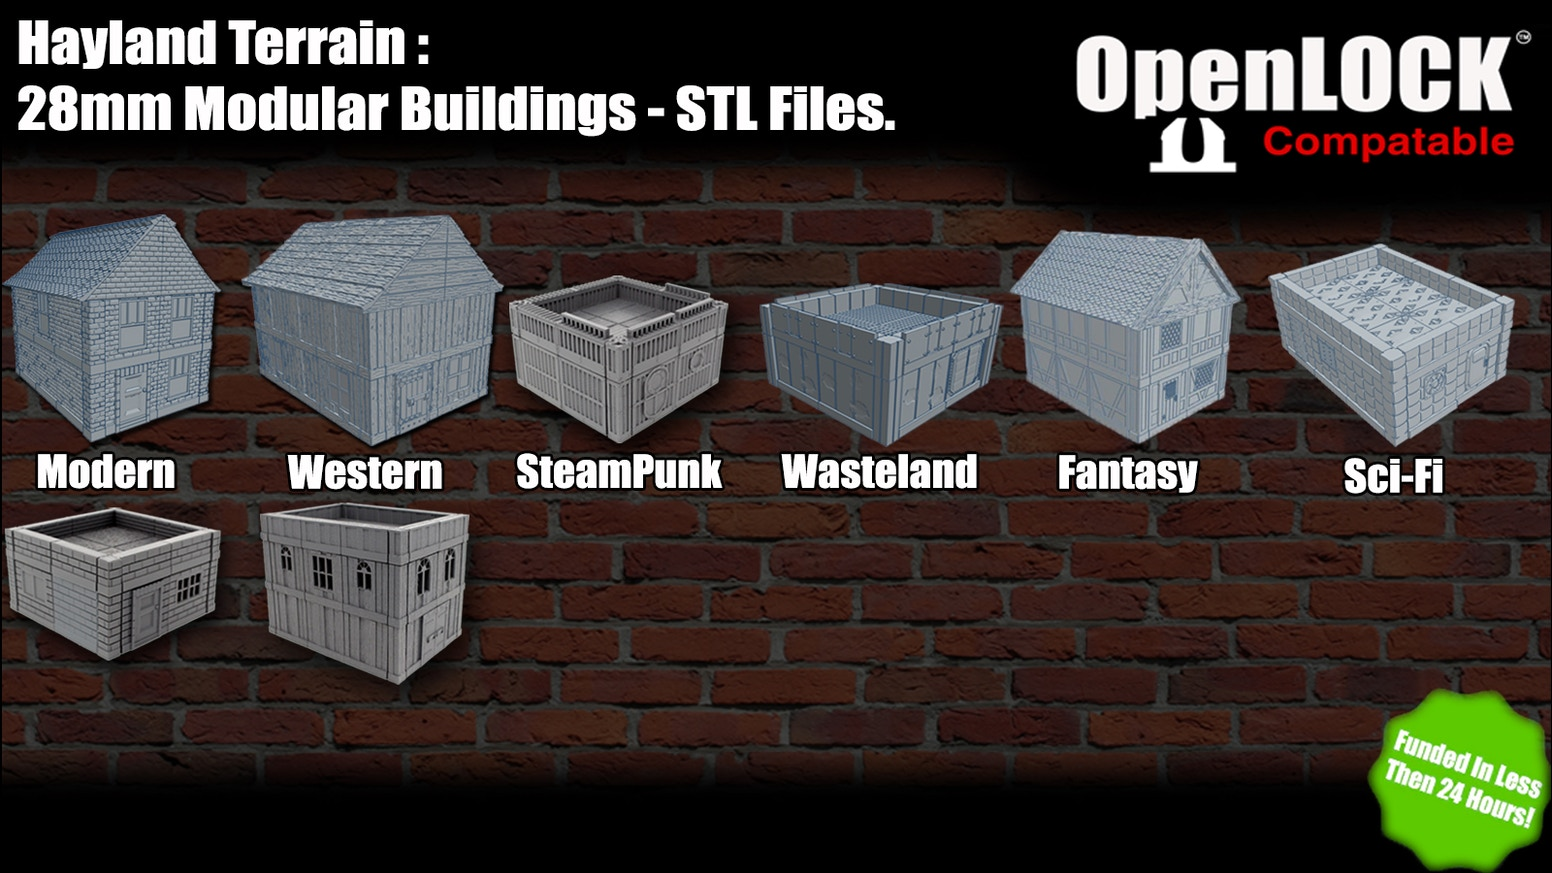 Hayland: 28mm Modular Buildings - Compatible with OpenLOCK system